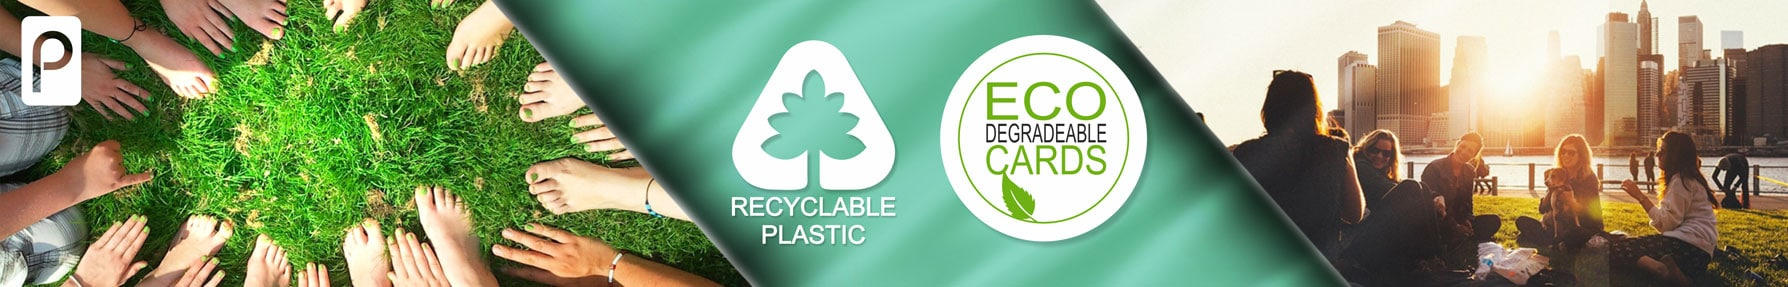 Plastic membership cards eco friendly and recyclable from Premier Plastic Cards